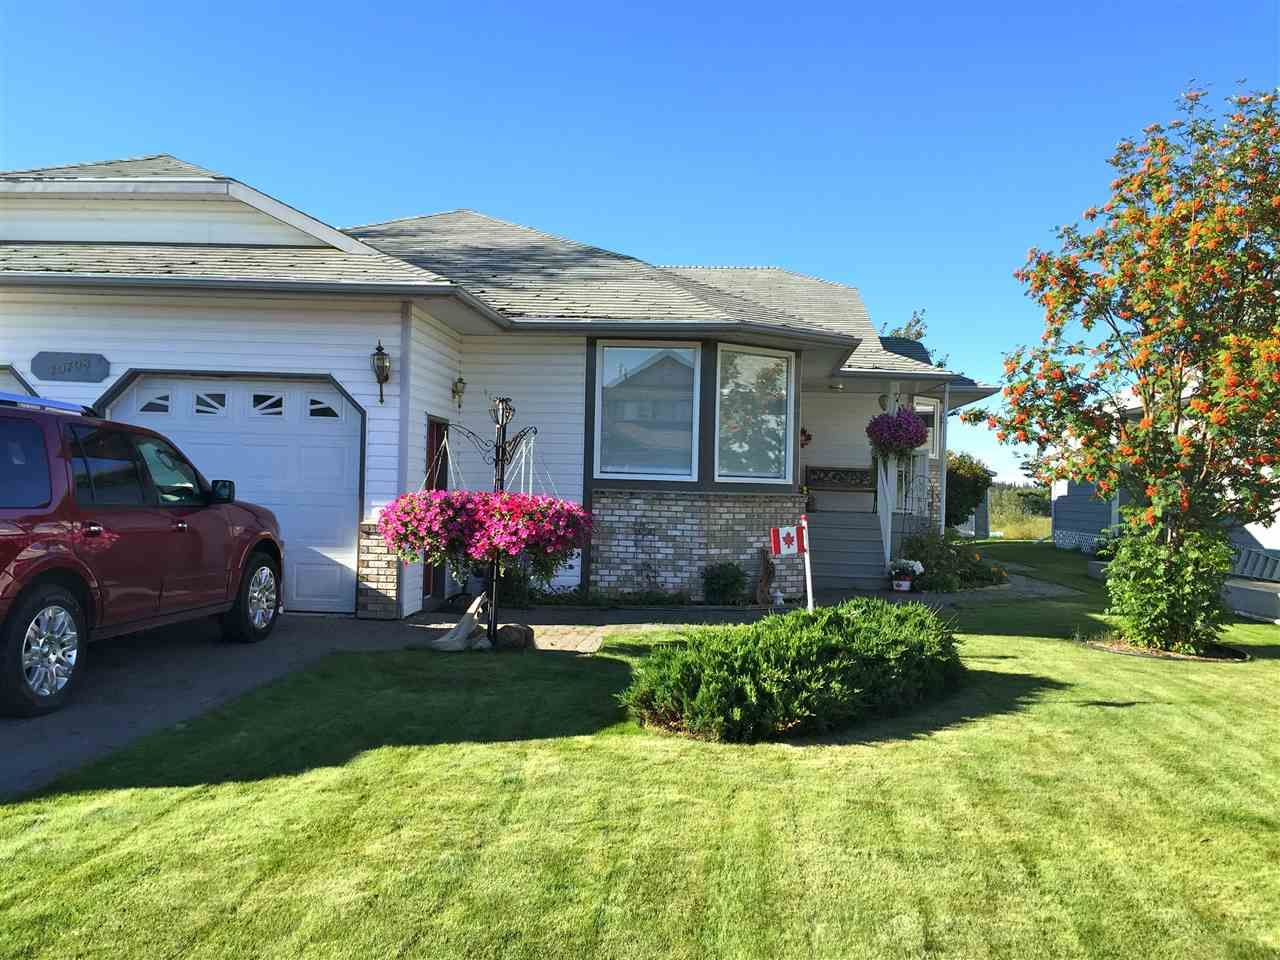 """Main Photo: 10708 114 Avenue in Fort St. John: Fort St. John - City NW House for sale in """"FINCH"""" (Fort St. John (Zone 60))  : MLS®# R2562500"""